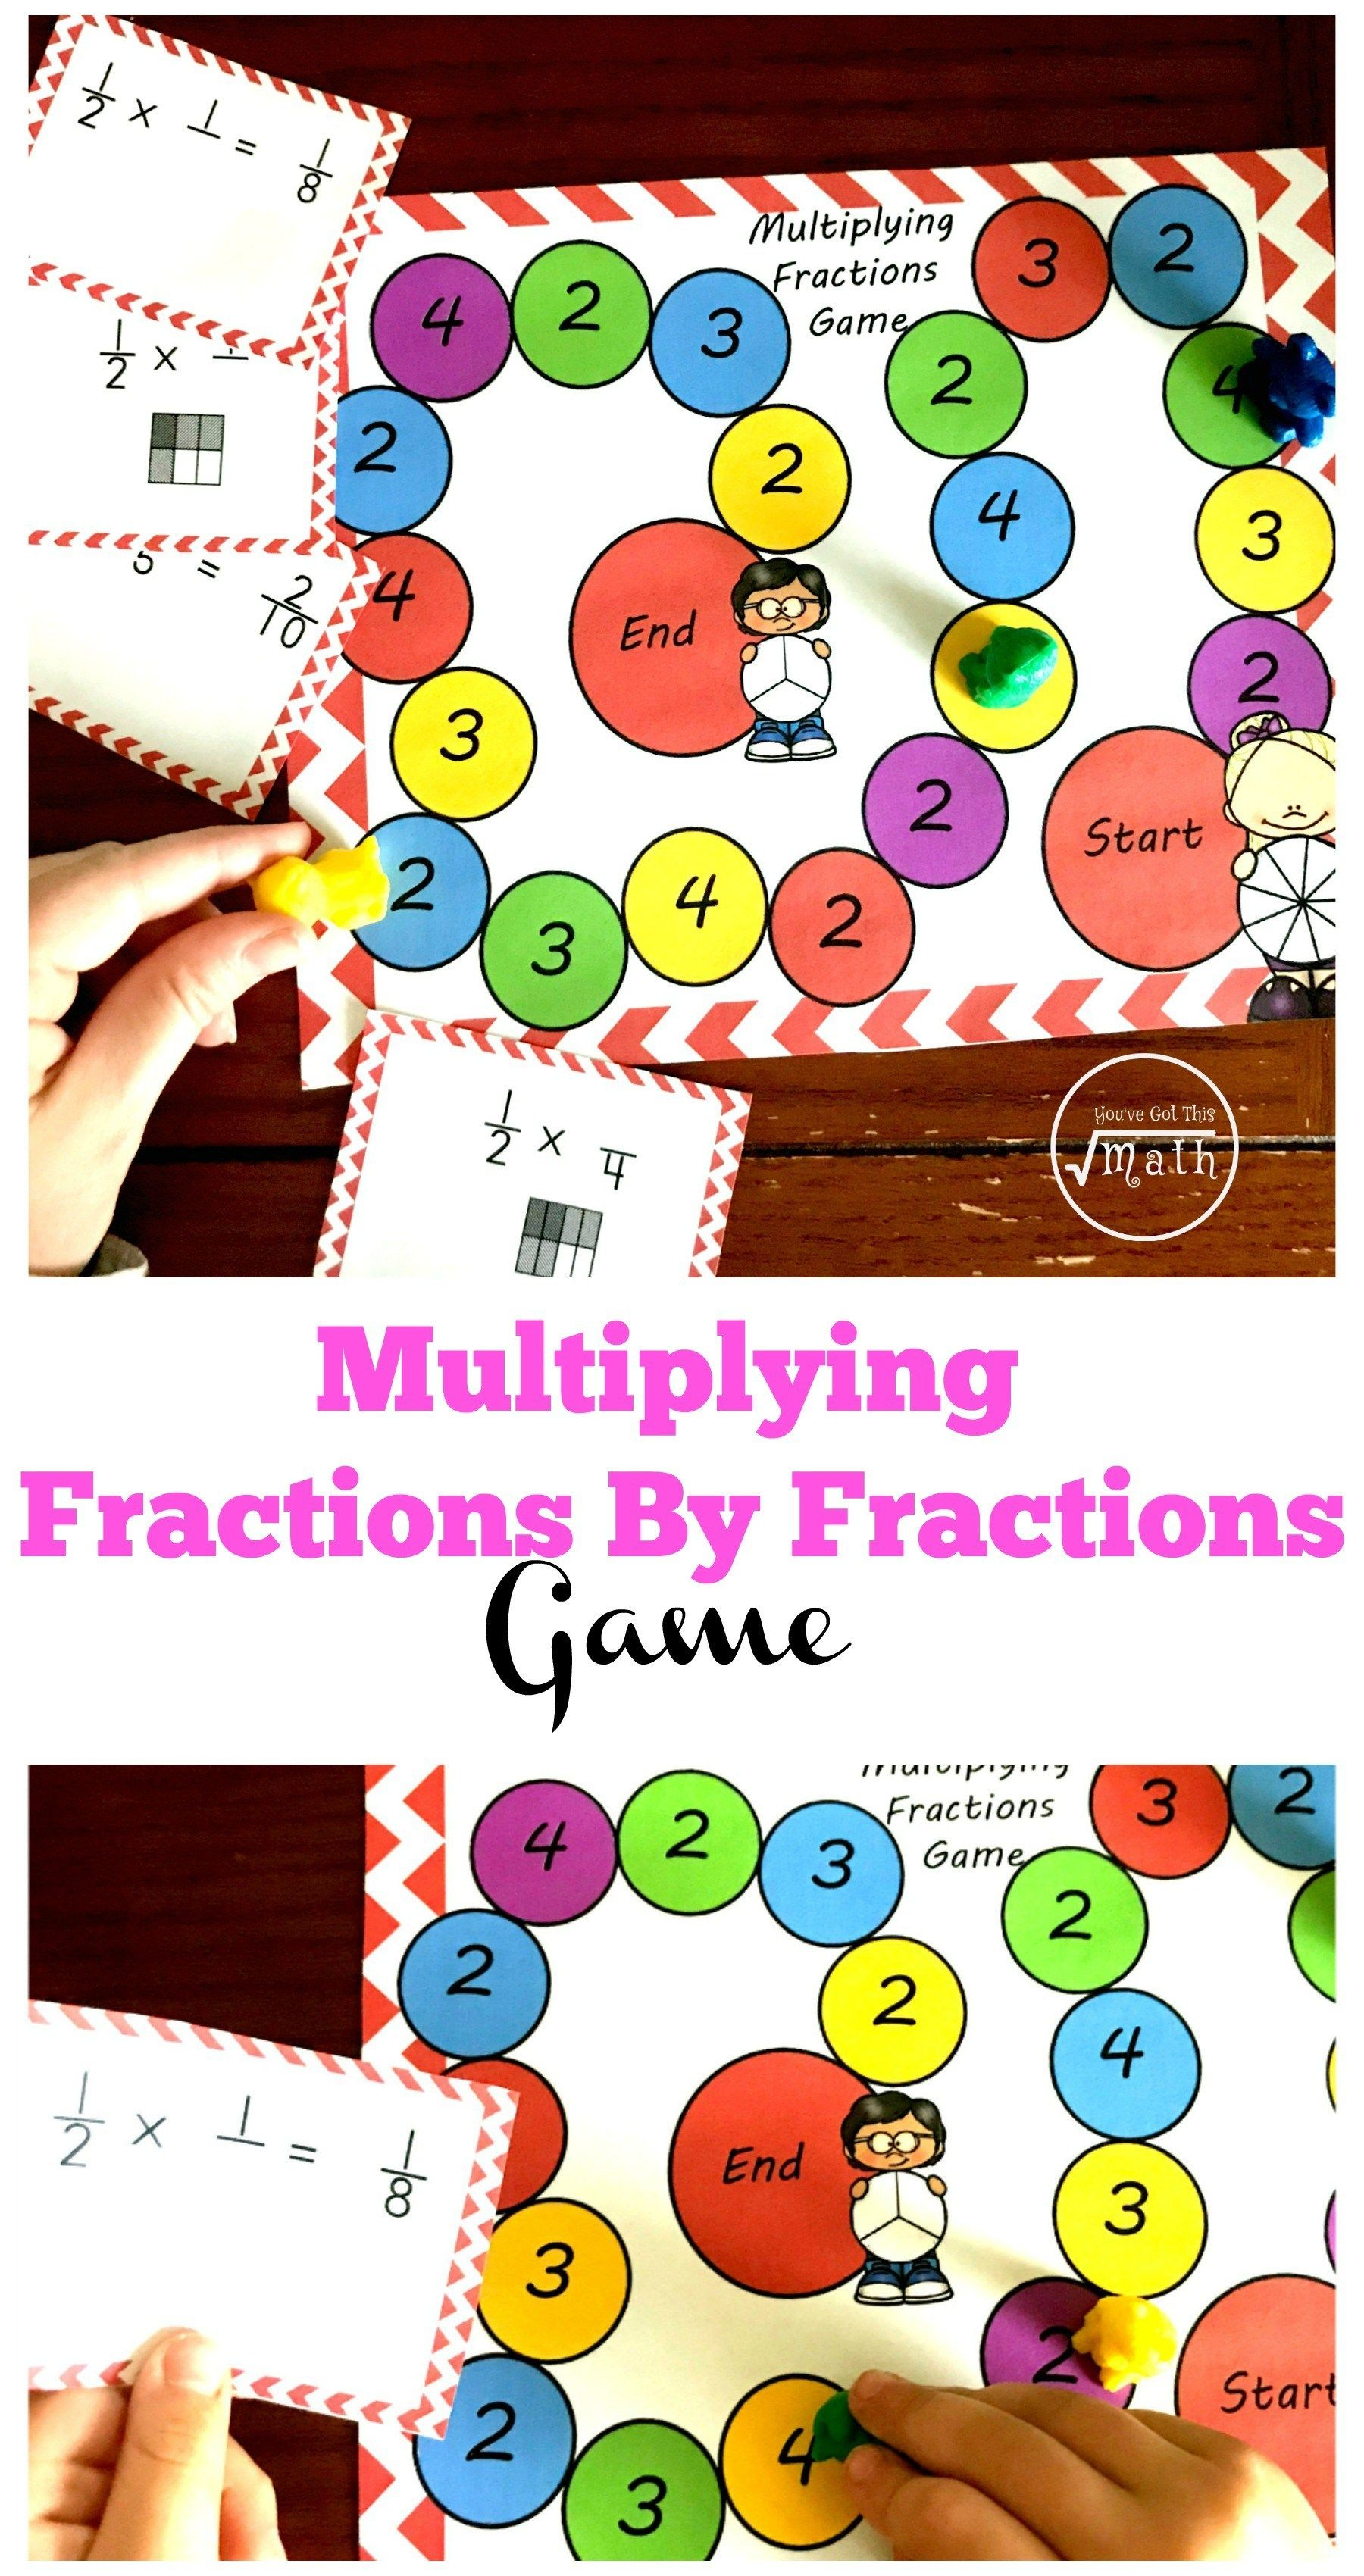 photograph about Multiplying Fractions Games Printable referred to as Cost-free printable portion video game for multiplying fractions Artofit